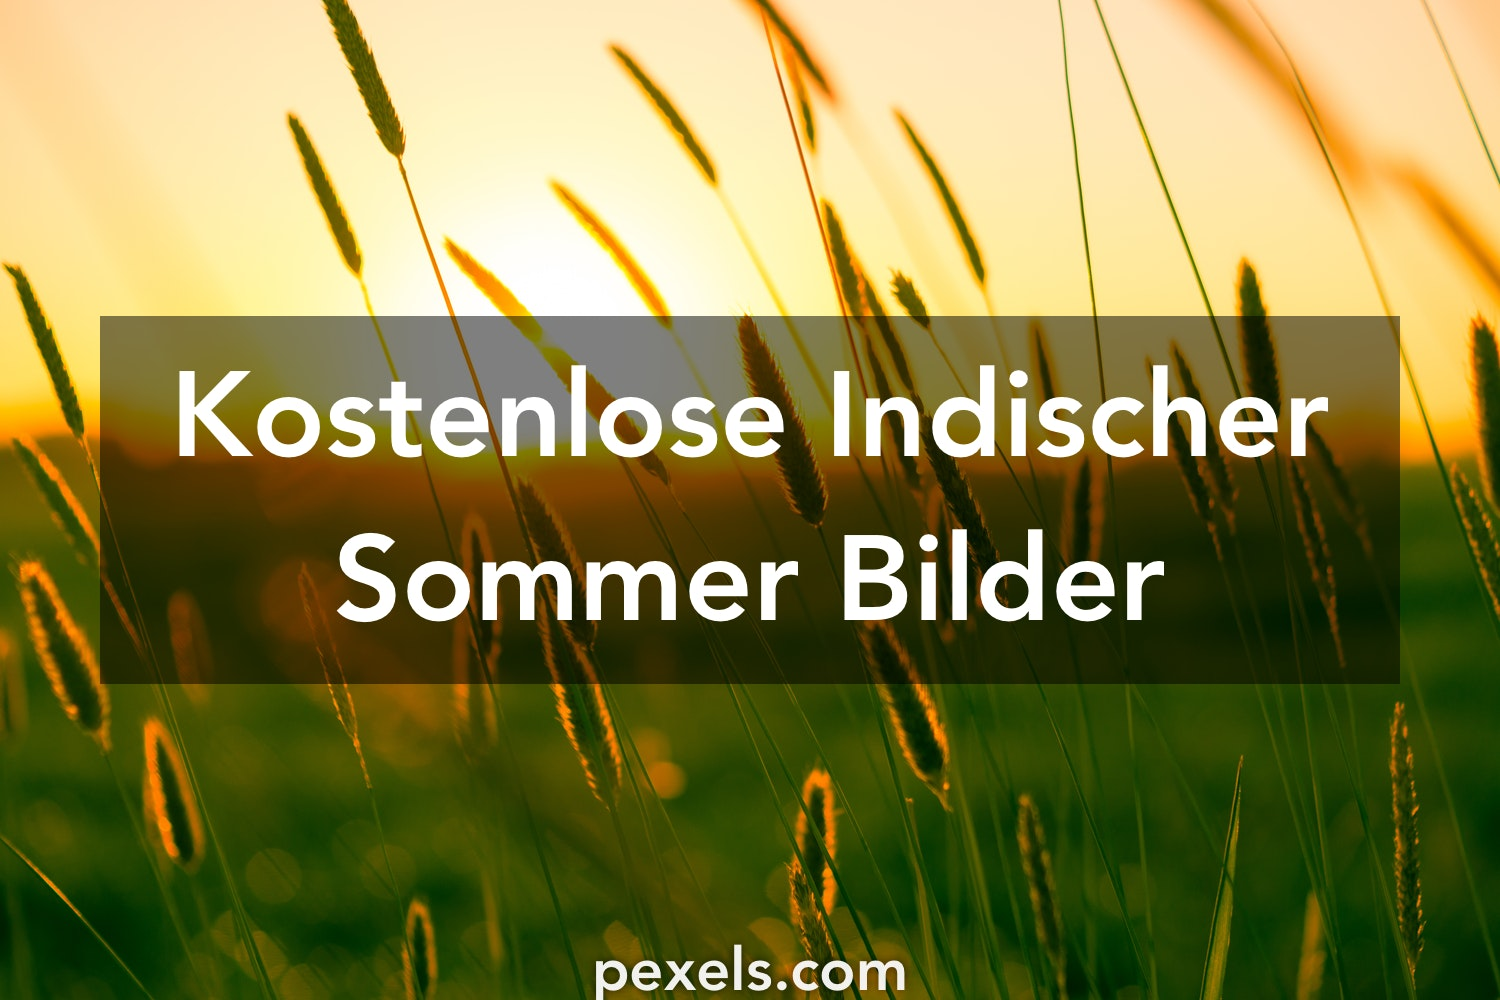 1000 indischer sommer fotos pexels kostenlose stock fotos. Black Bedroom Furniture Sets. Home Design Ideas